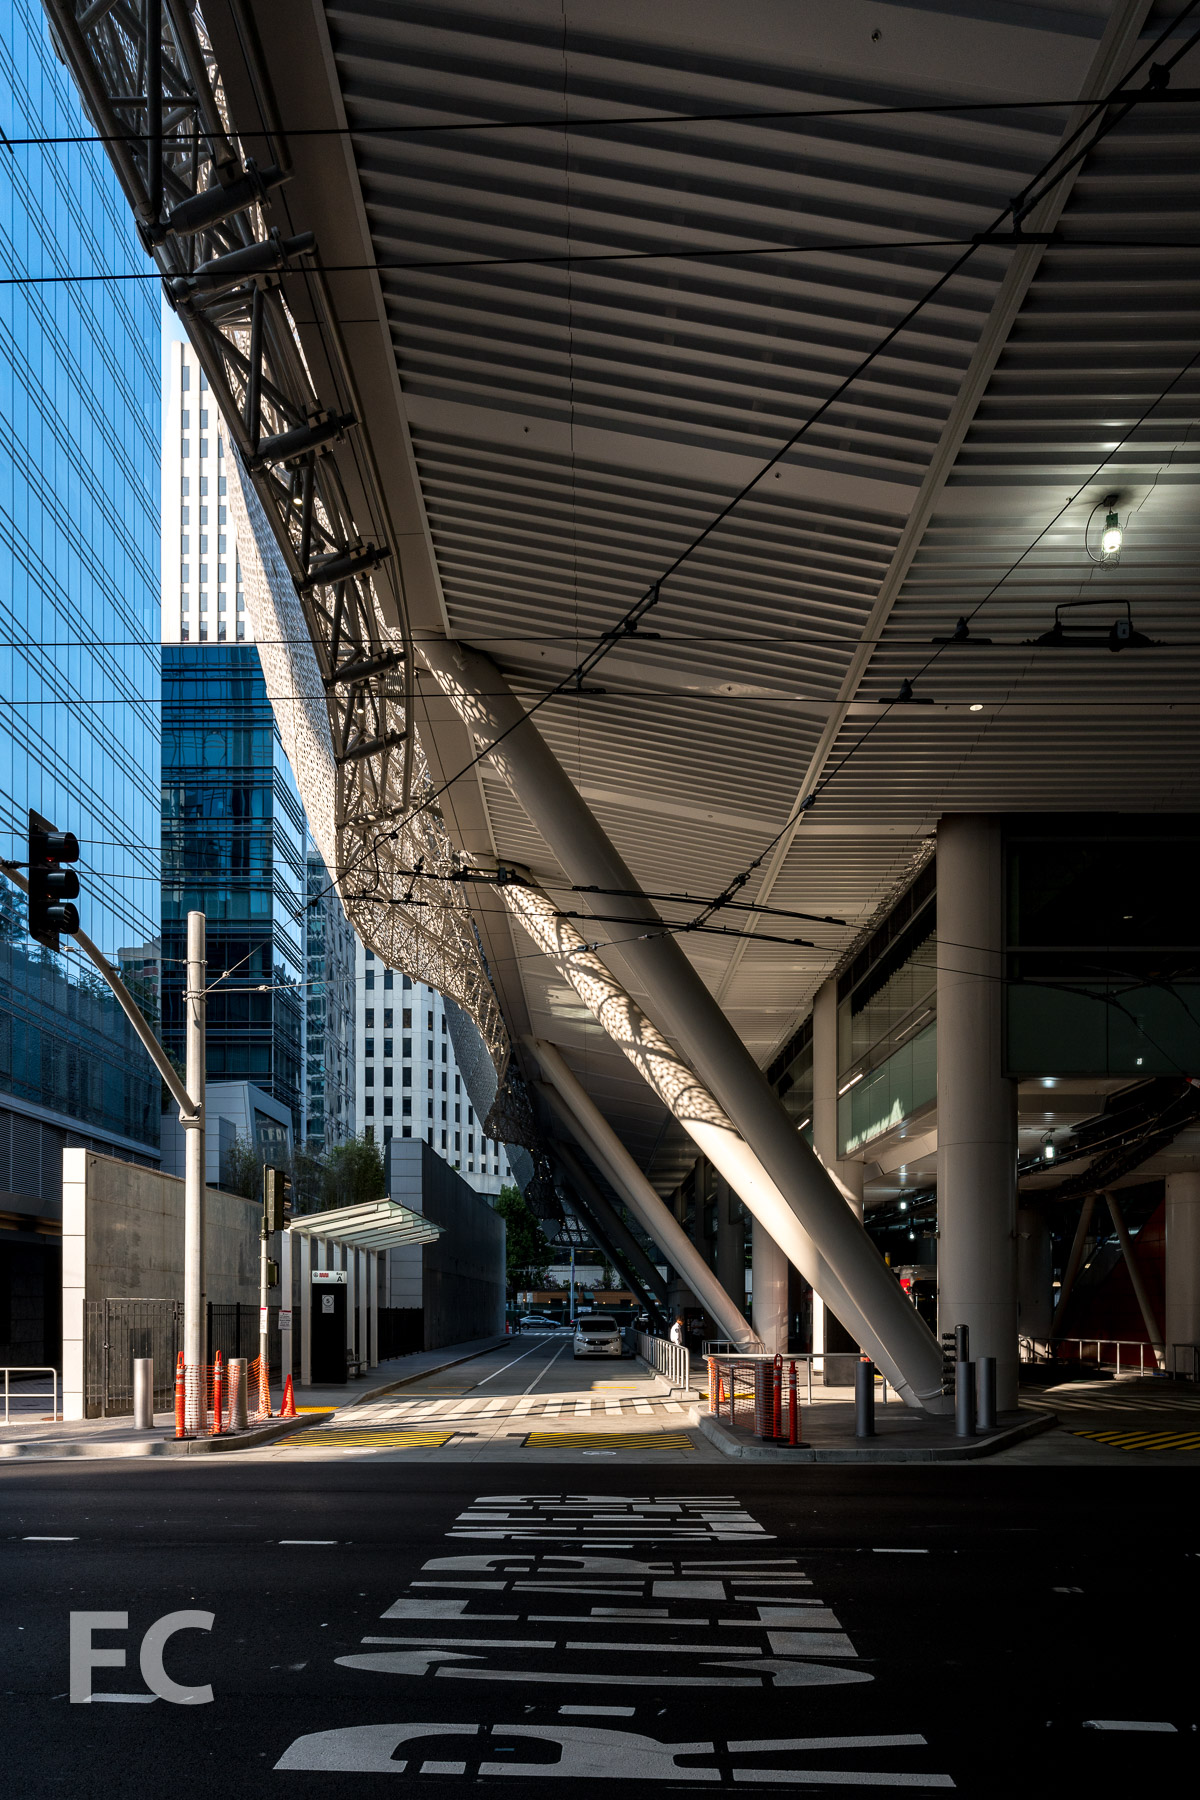 2018_08_18-Transbay Transit Center-DSC02730.jpg